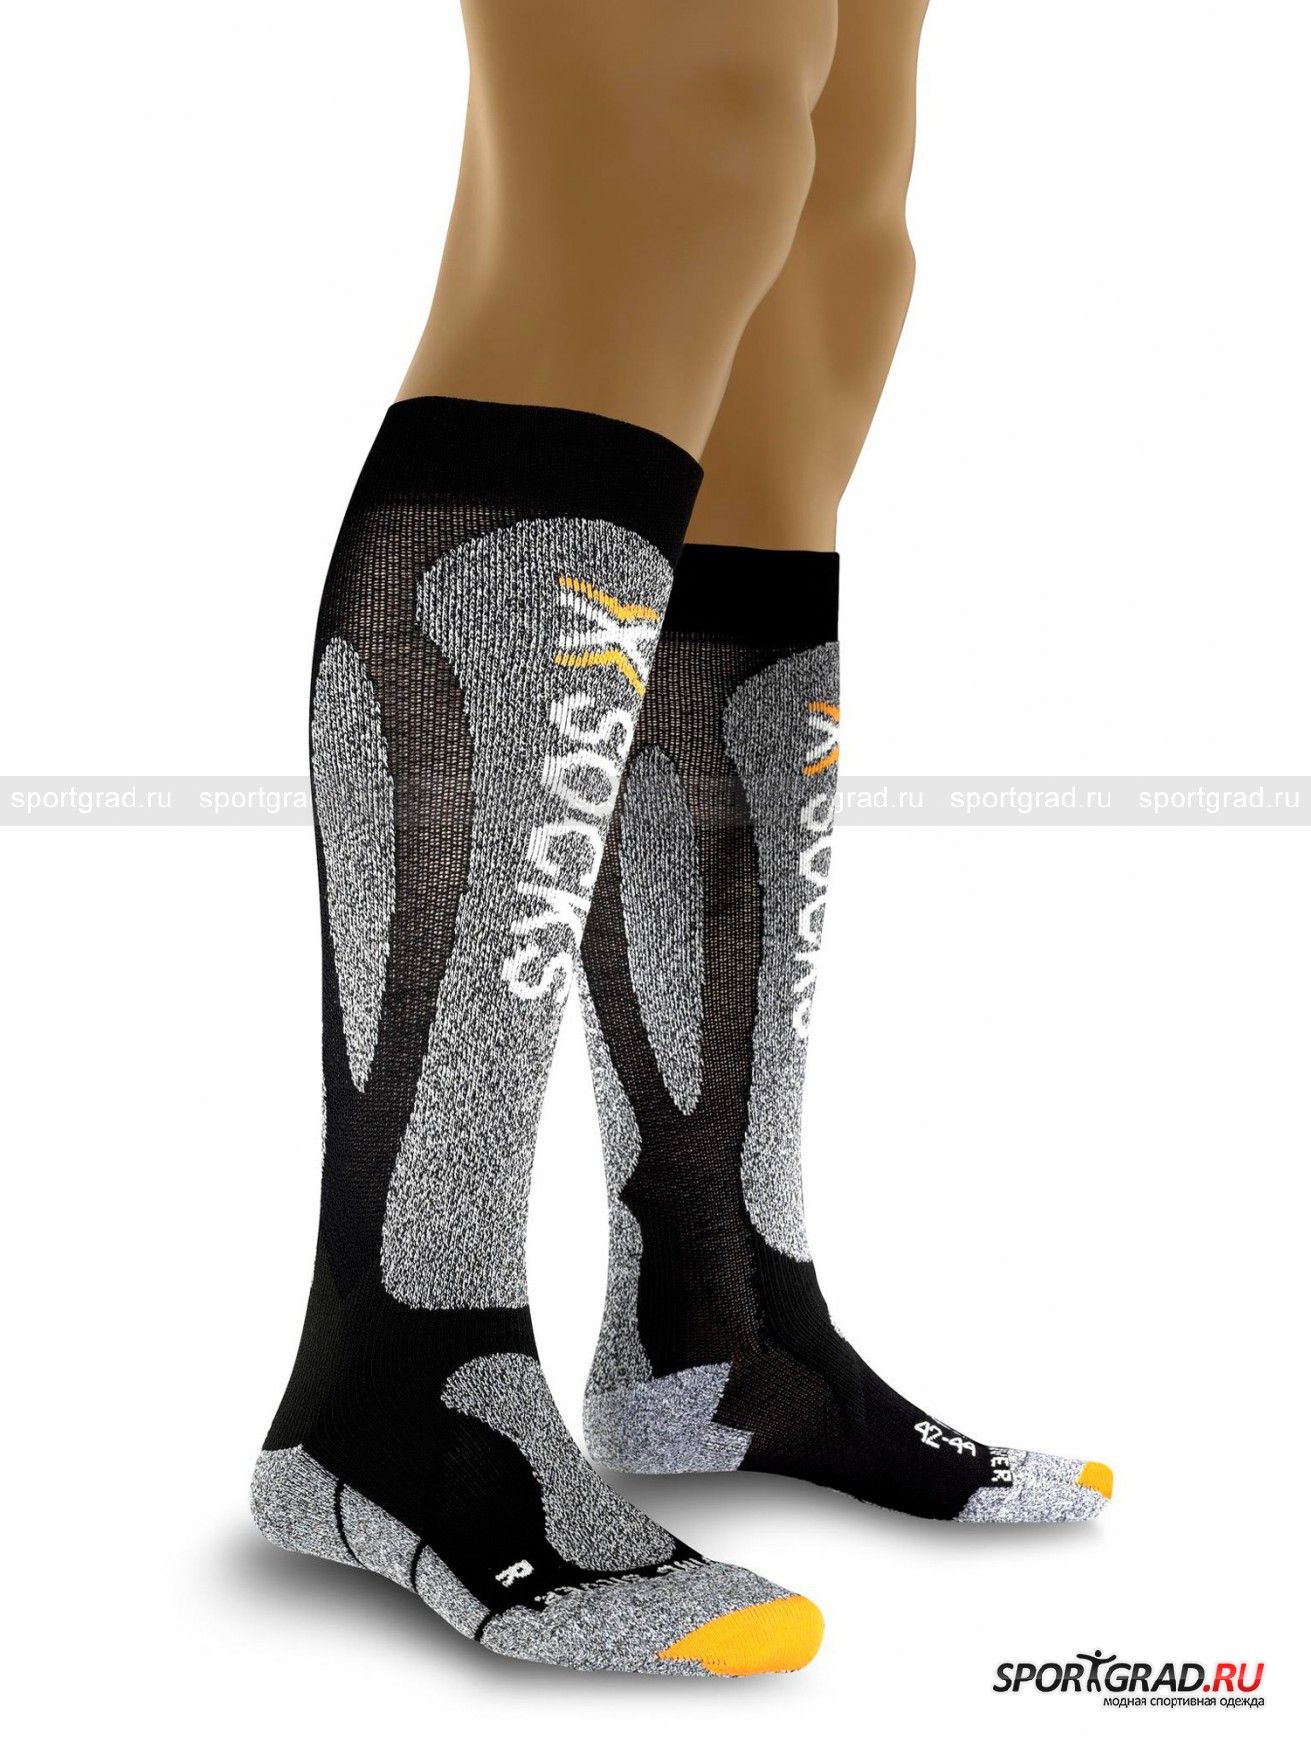 ���������� ������� Ski Carving Silver X-SOCKS